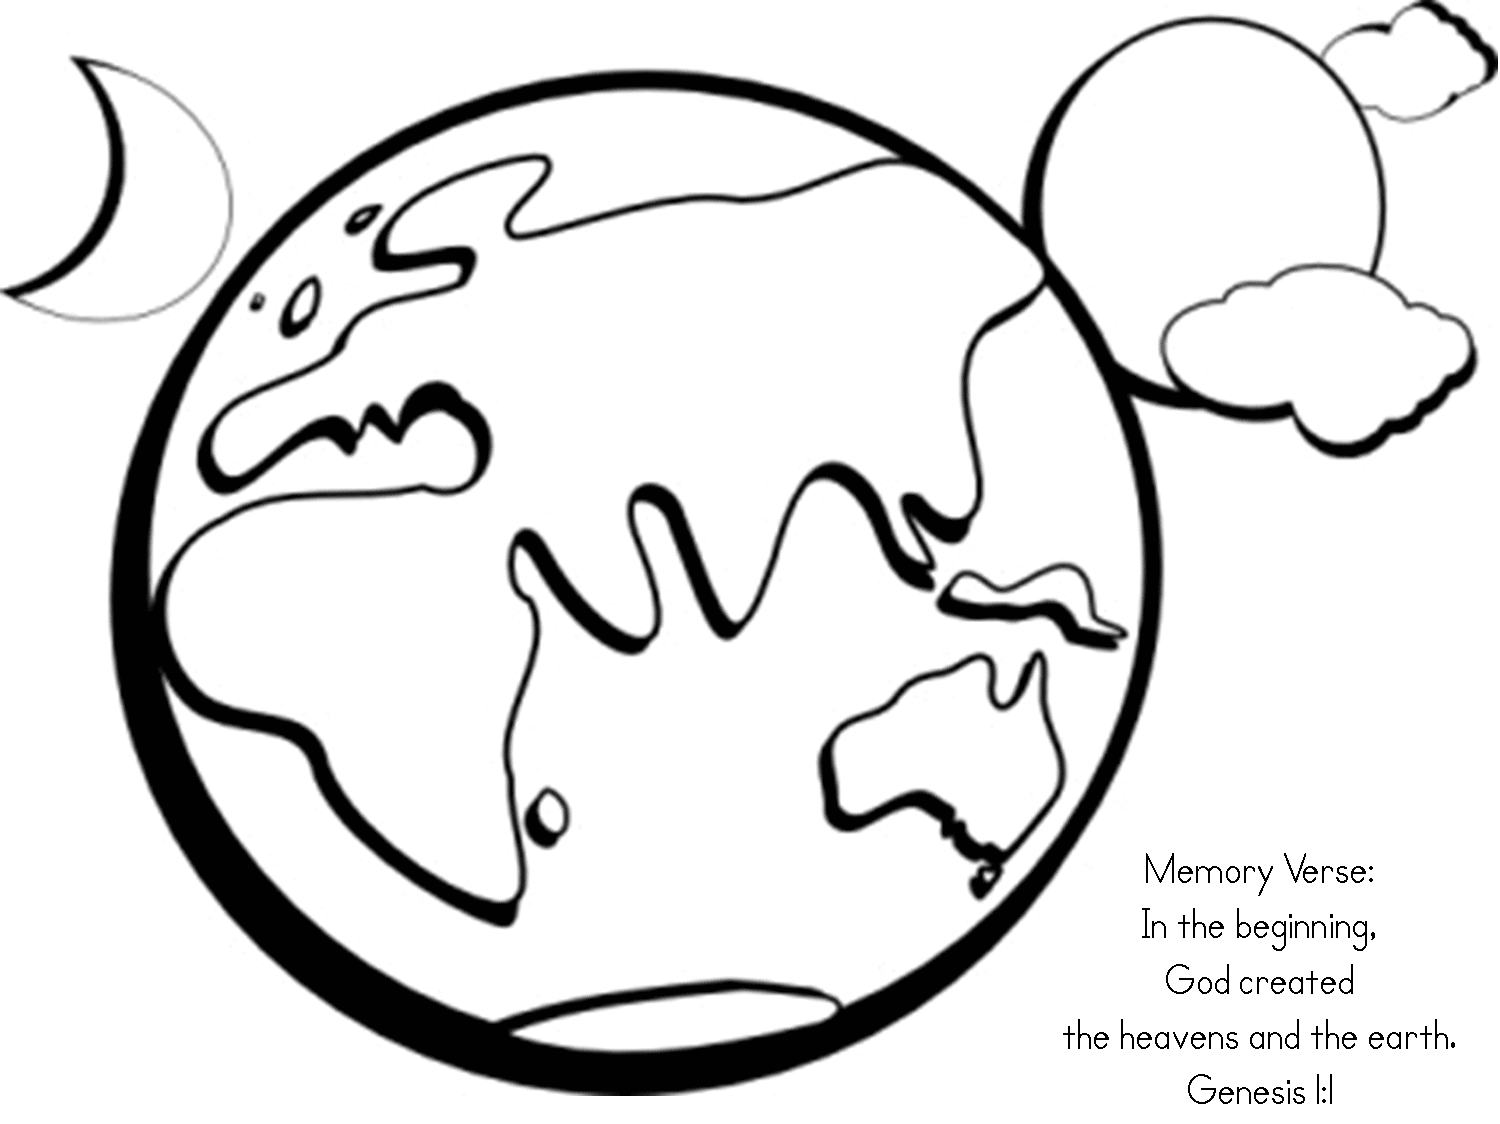 Coloring pages bible stories preschoolers - You Can Download A Copy Of The Page Here